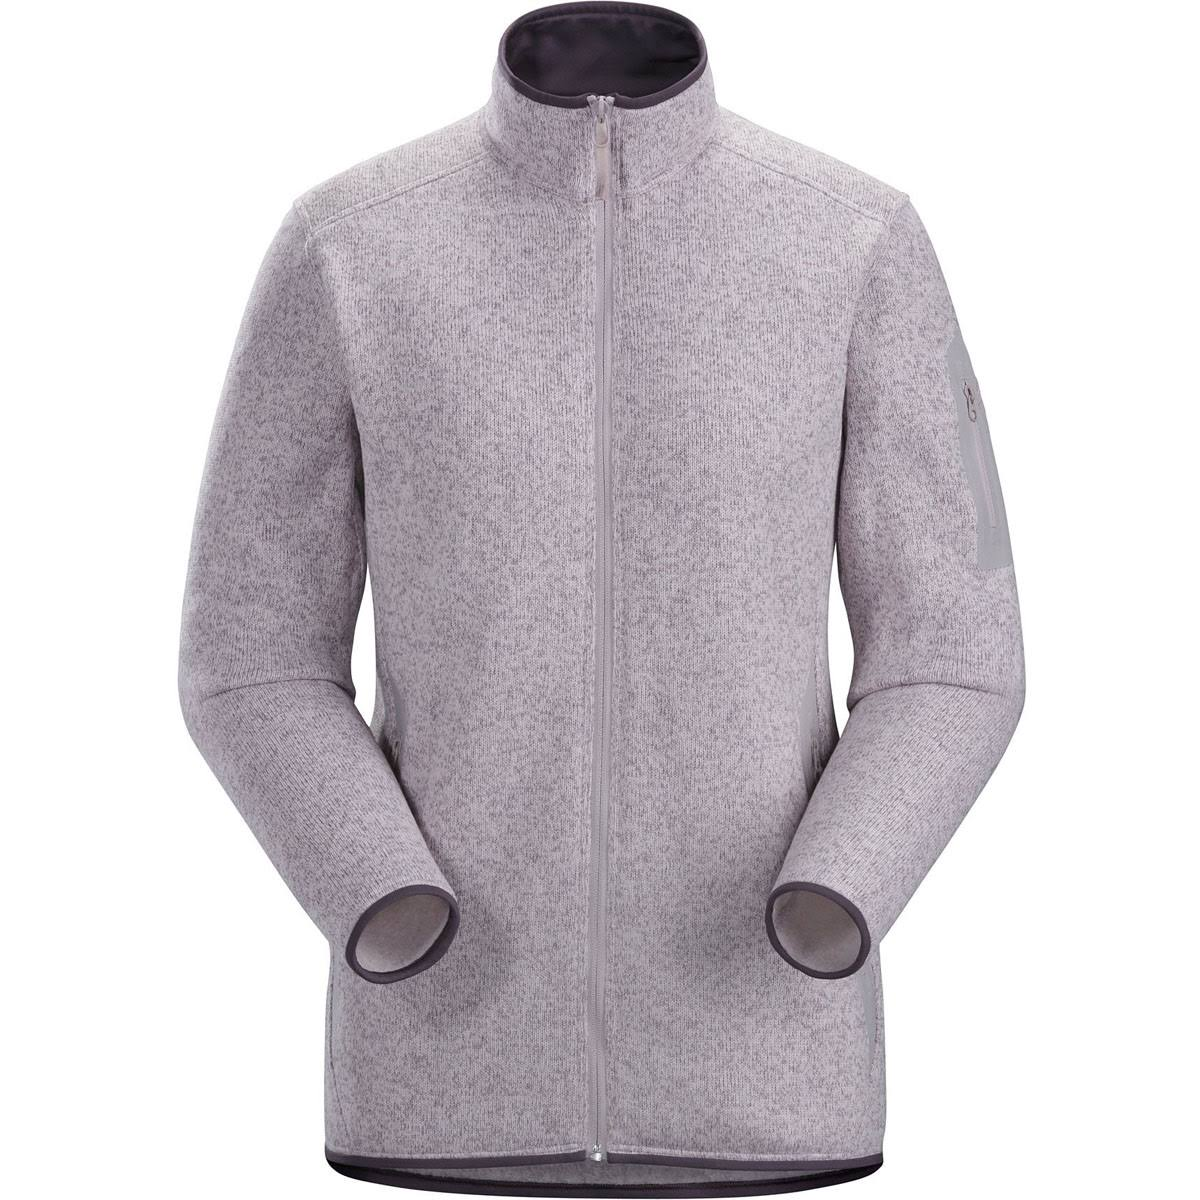 Arc'teryx Covert Cardigan Women's (Crystalline Heather)